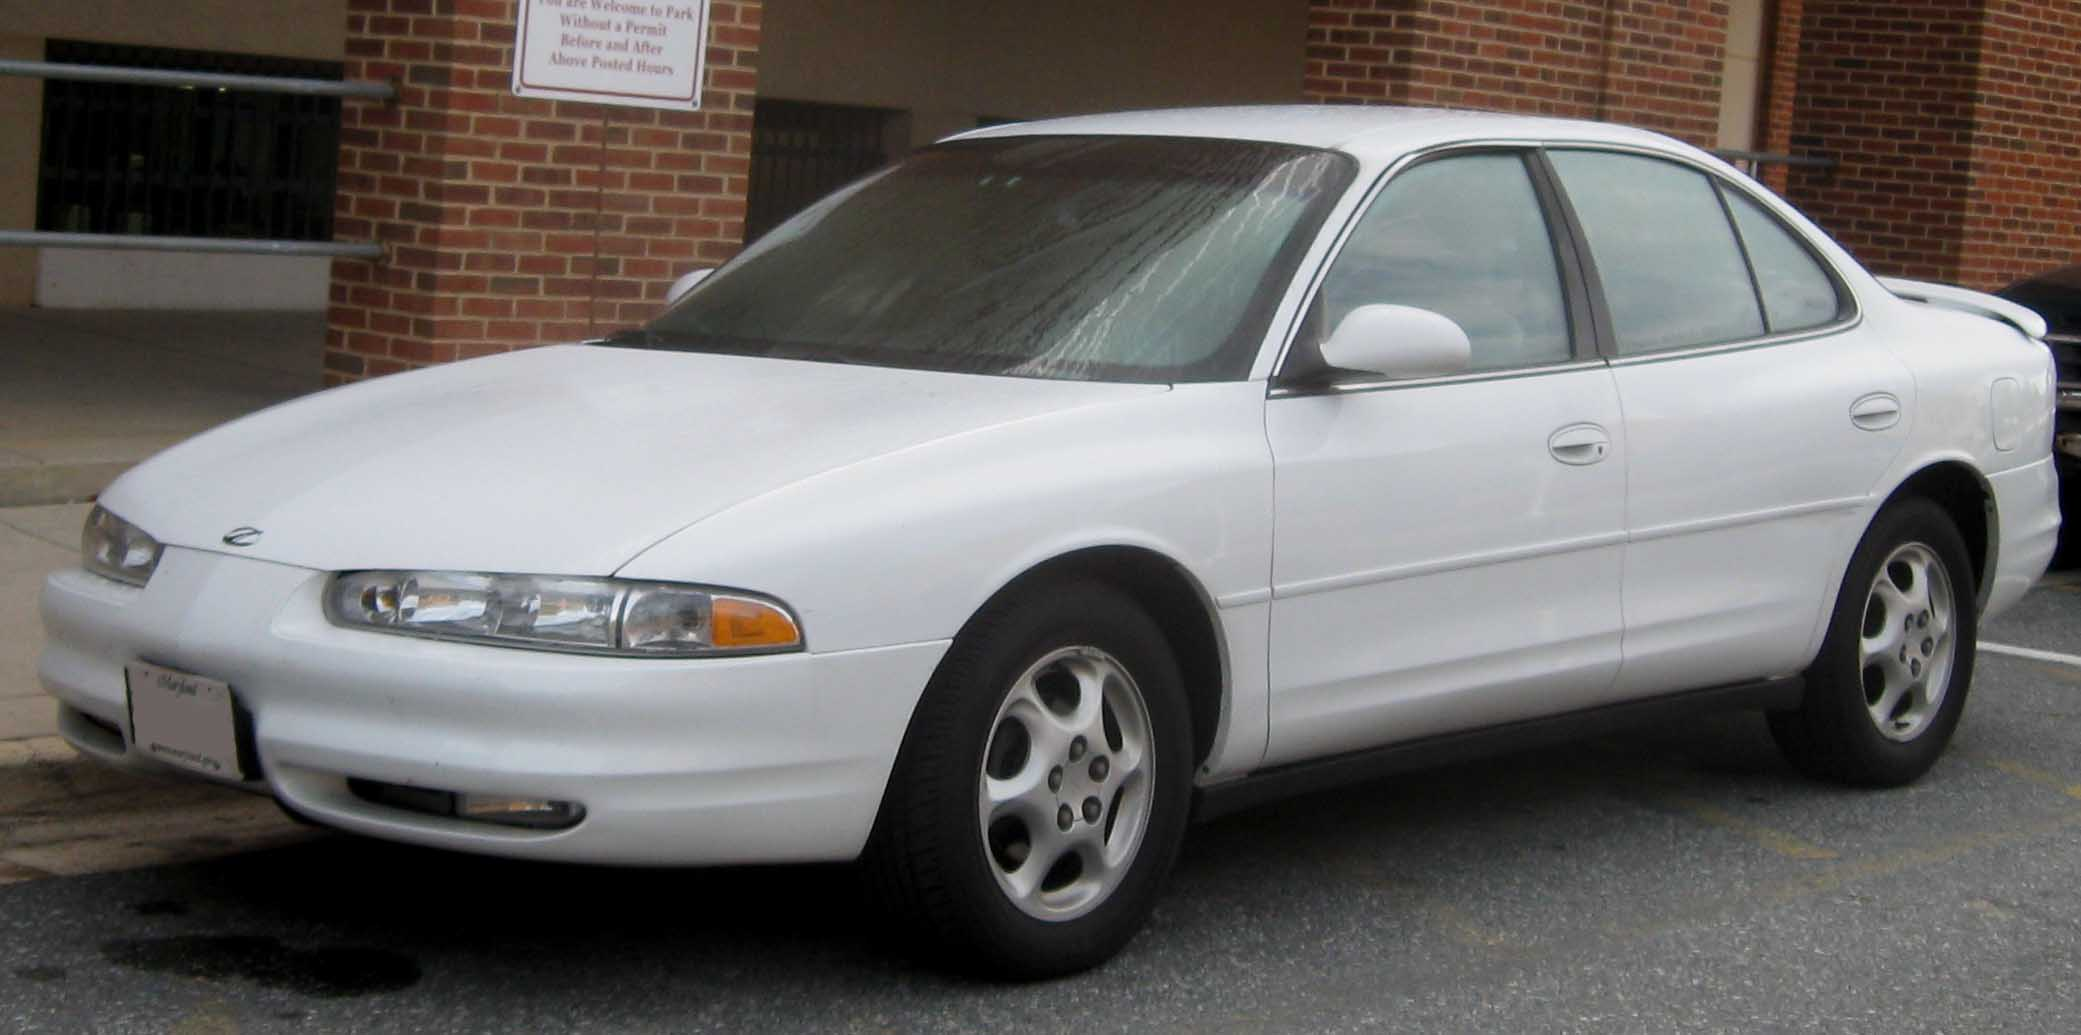 Oldsmobile Intrigue Wikipedia 1998 Cutlass Engine Diagram